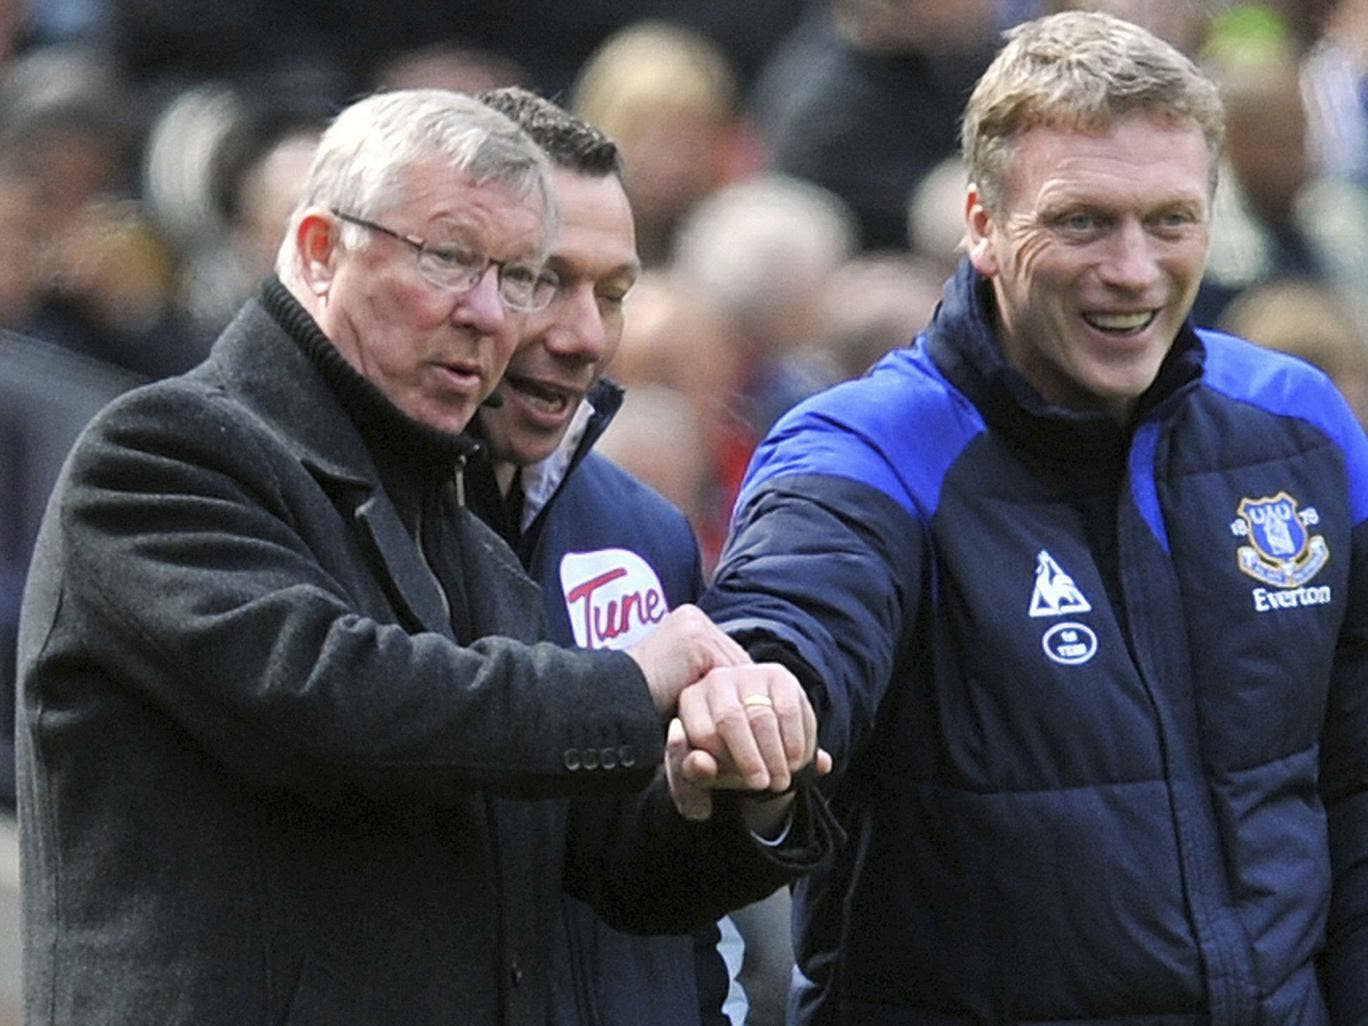 David Moyes has signed a six-year contract at Manchester United